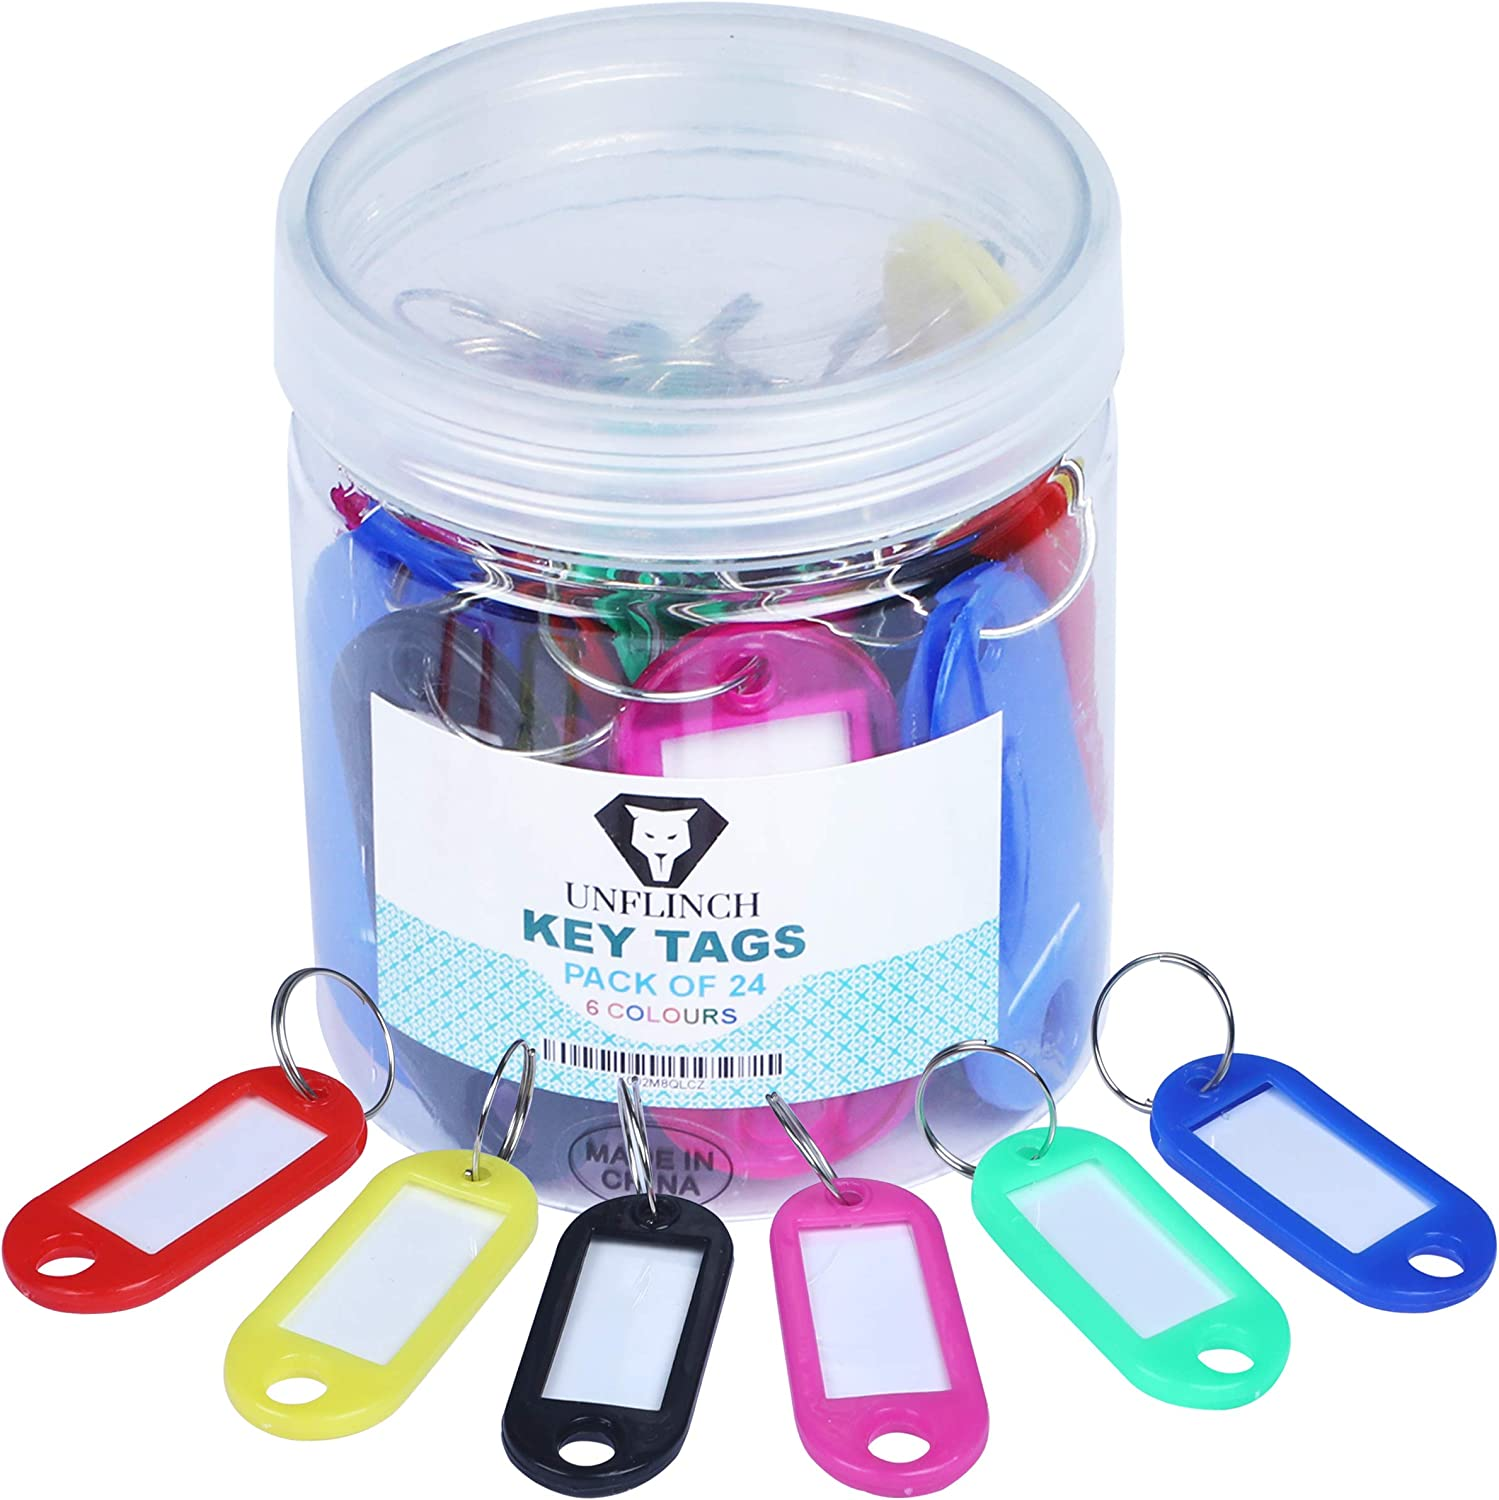 Unflinch Key Tags Pack of 24 - Plastic Assorted Labels with Metal Ring for Organized Tours, Travels, Home, Office and More